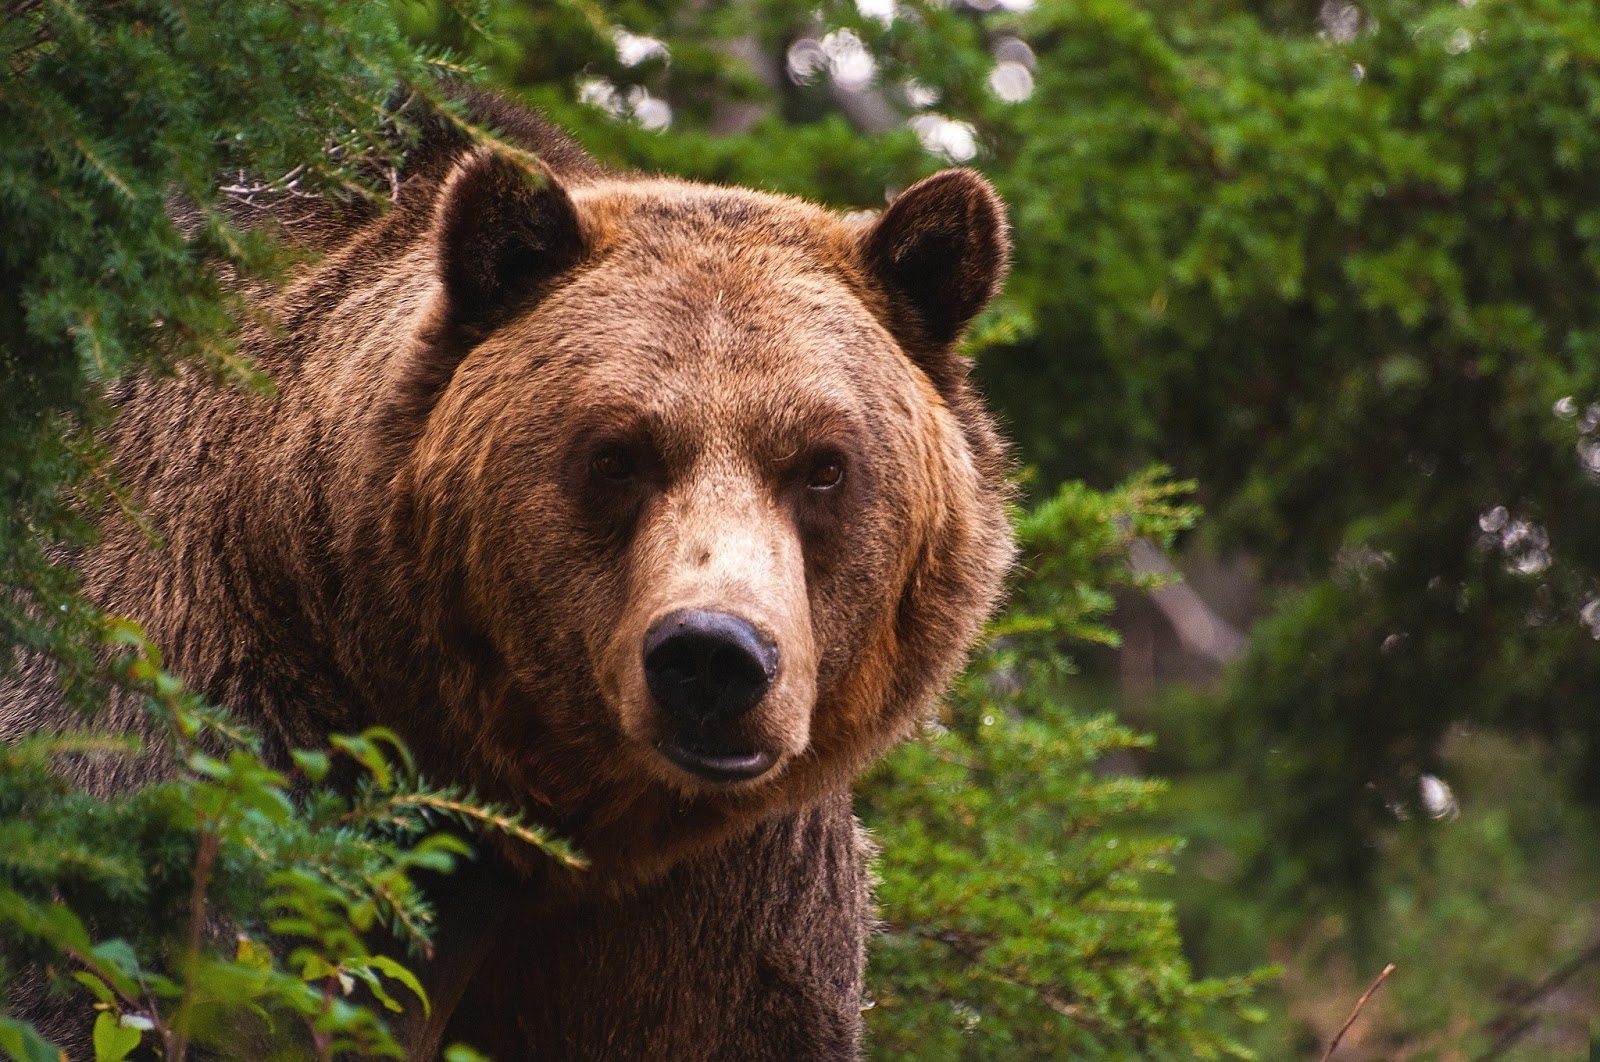 grizzly bear wild life animal